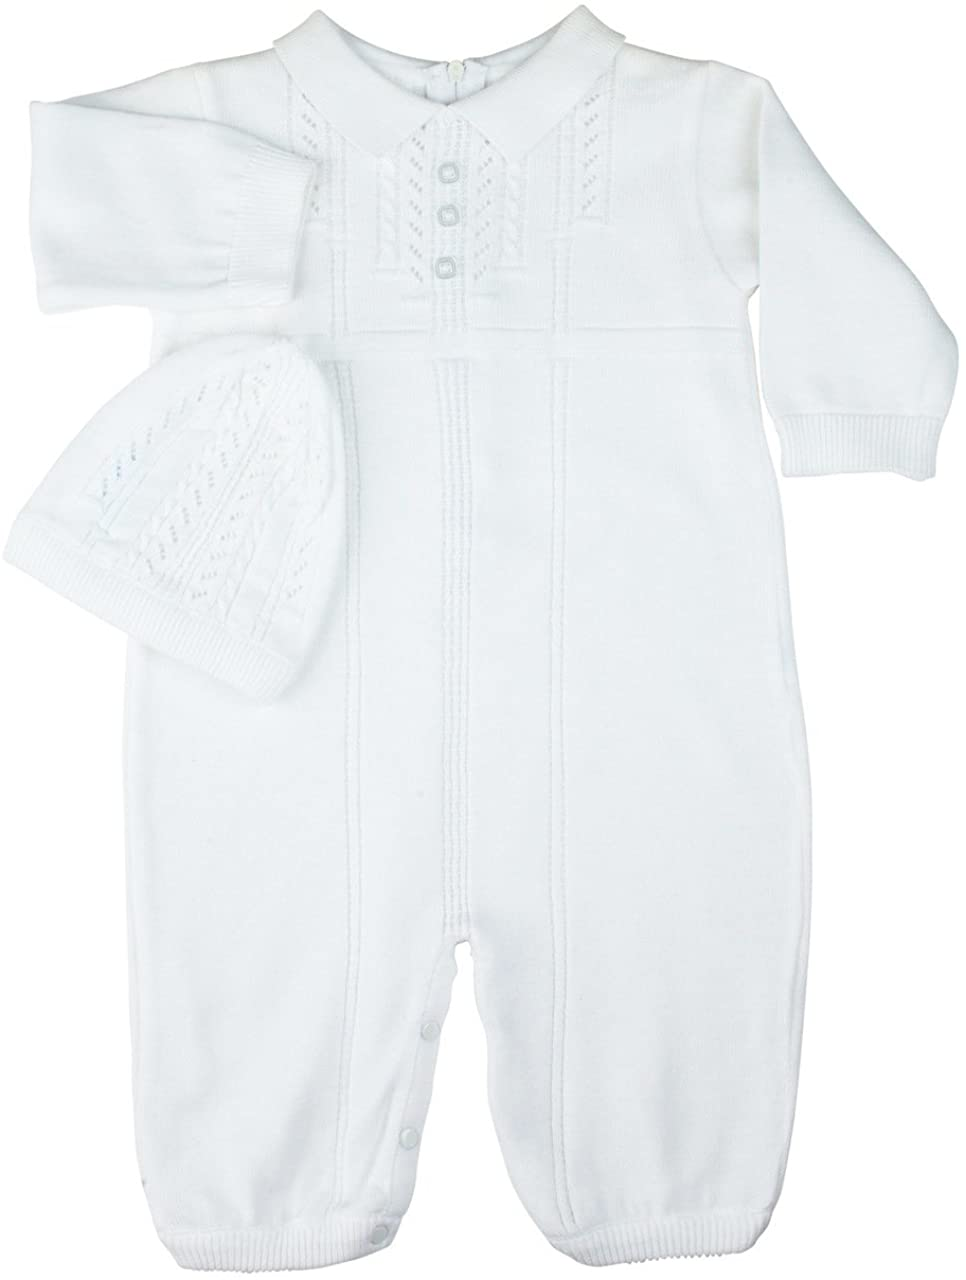 Feltman Brothers Unisex White Knit Romper Hat Set Take Home Outfit (9M)